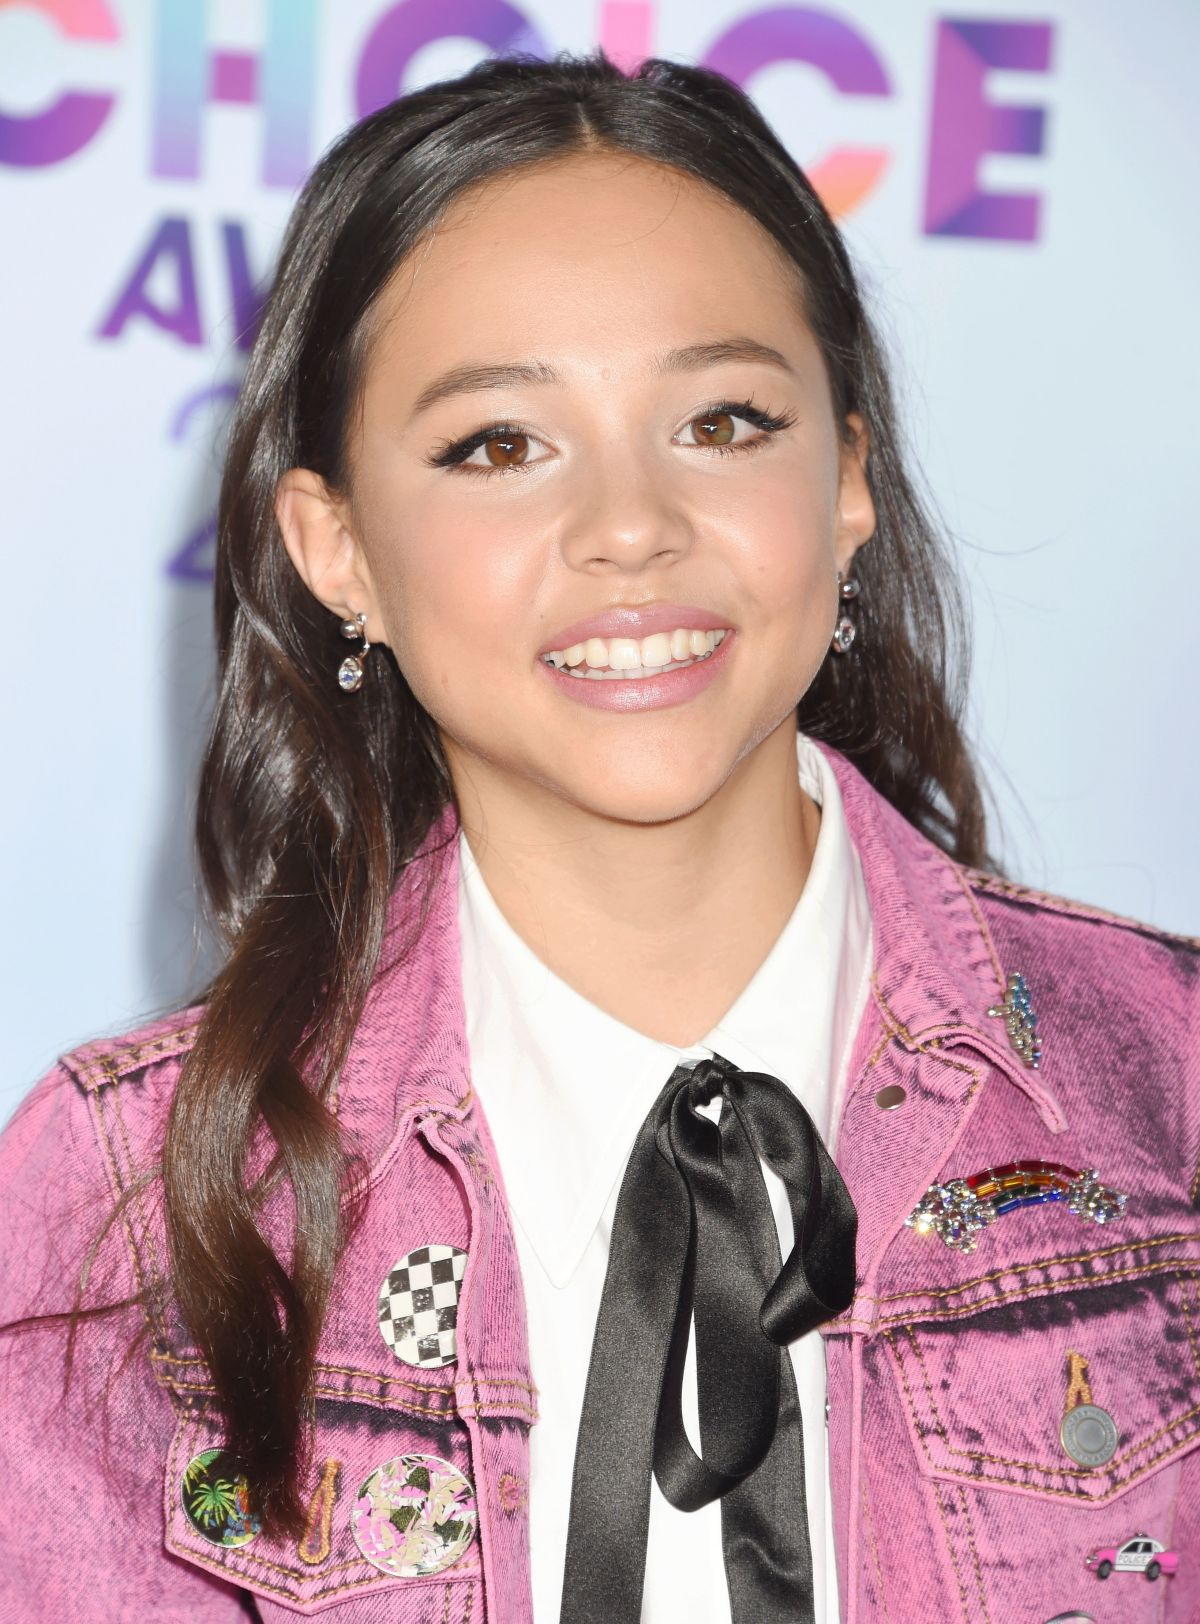 BREANNA YDE at Nickelodeon 2017 Kids' Choice Awards in Los Angeles 03/11/2017